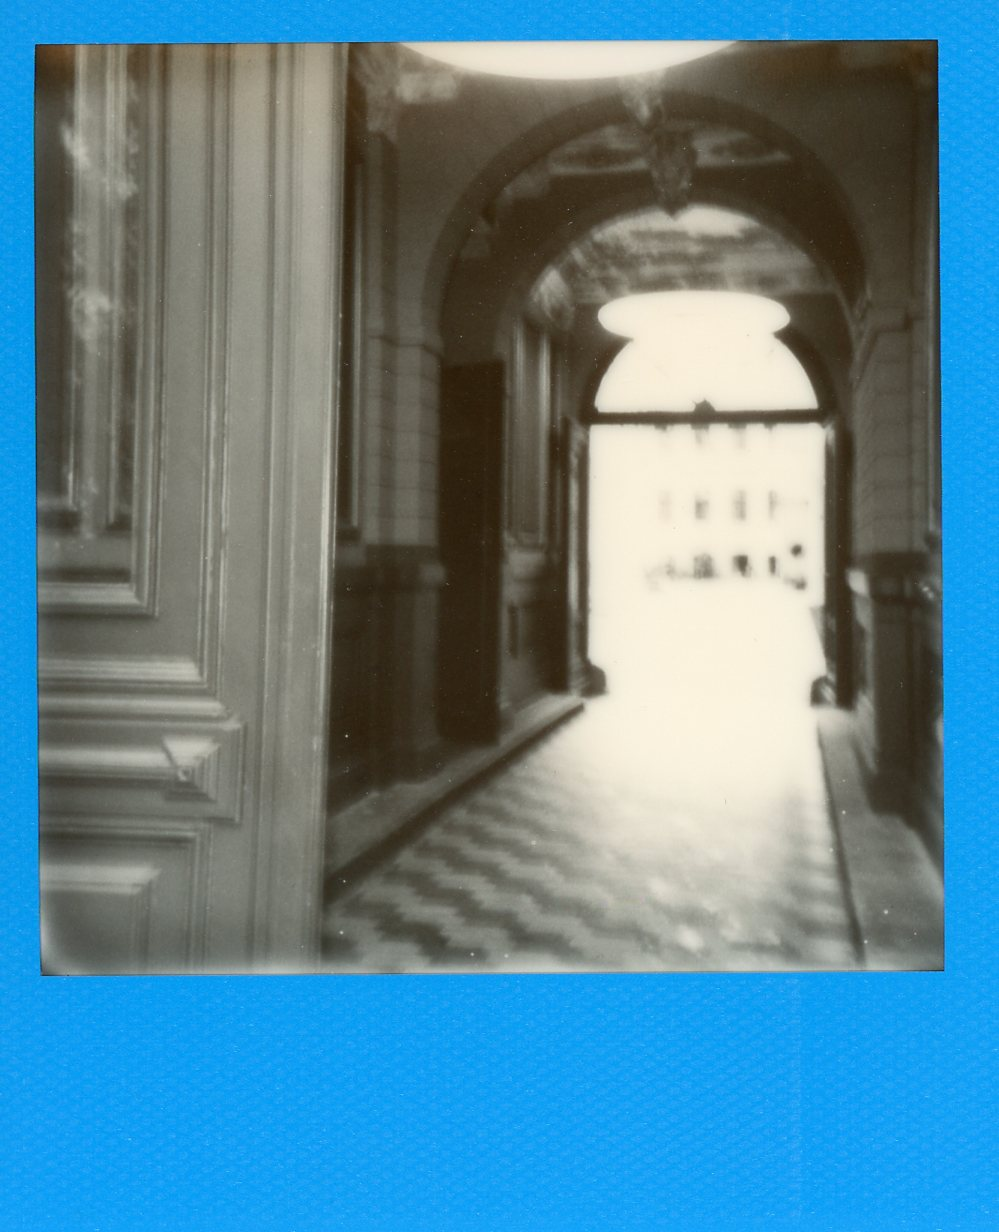 Berlin_Polaroid009.jpg